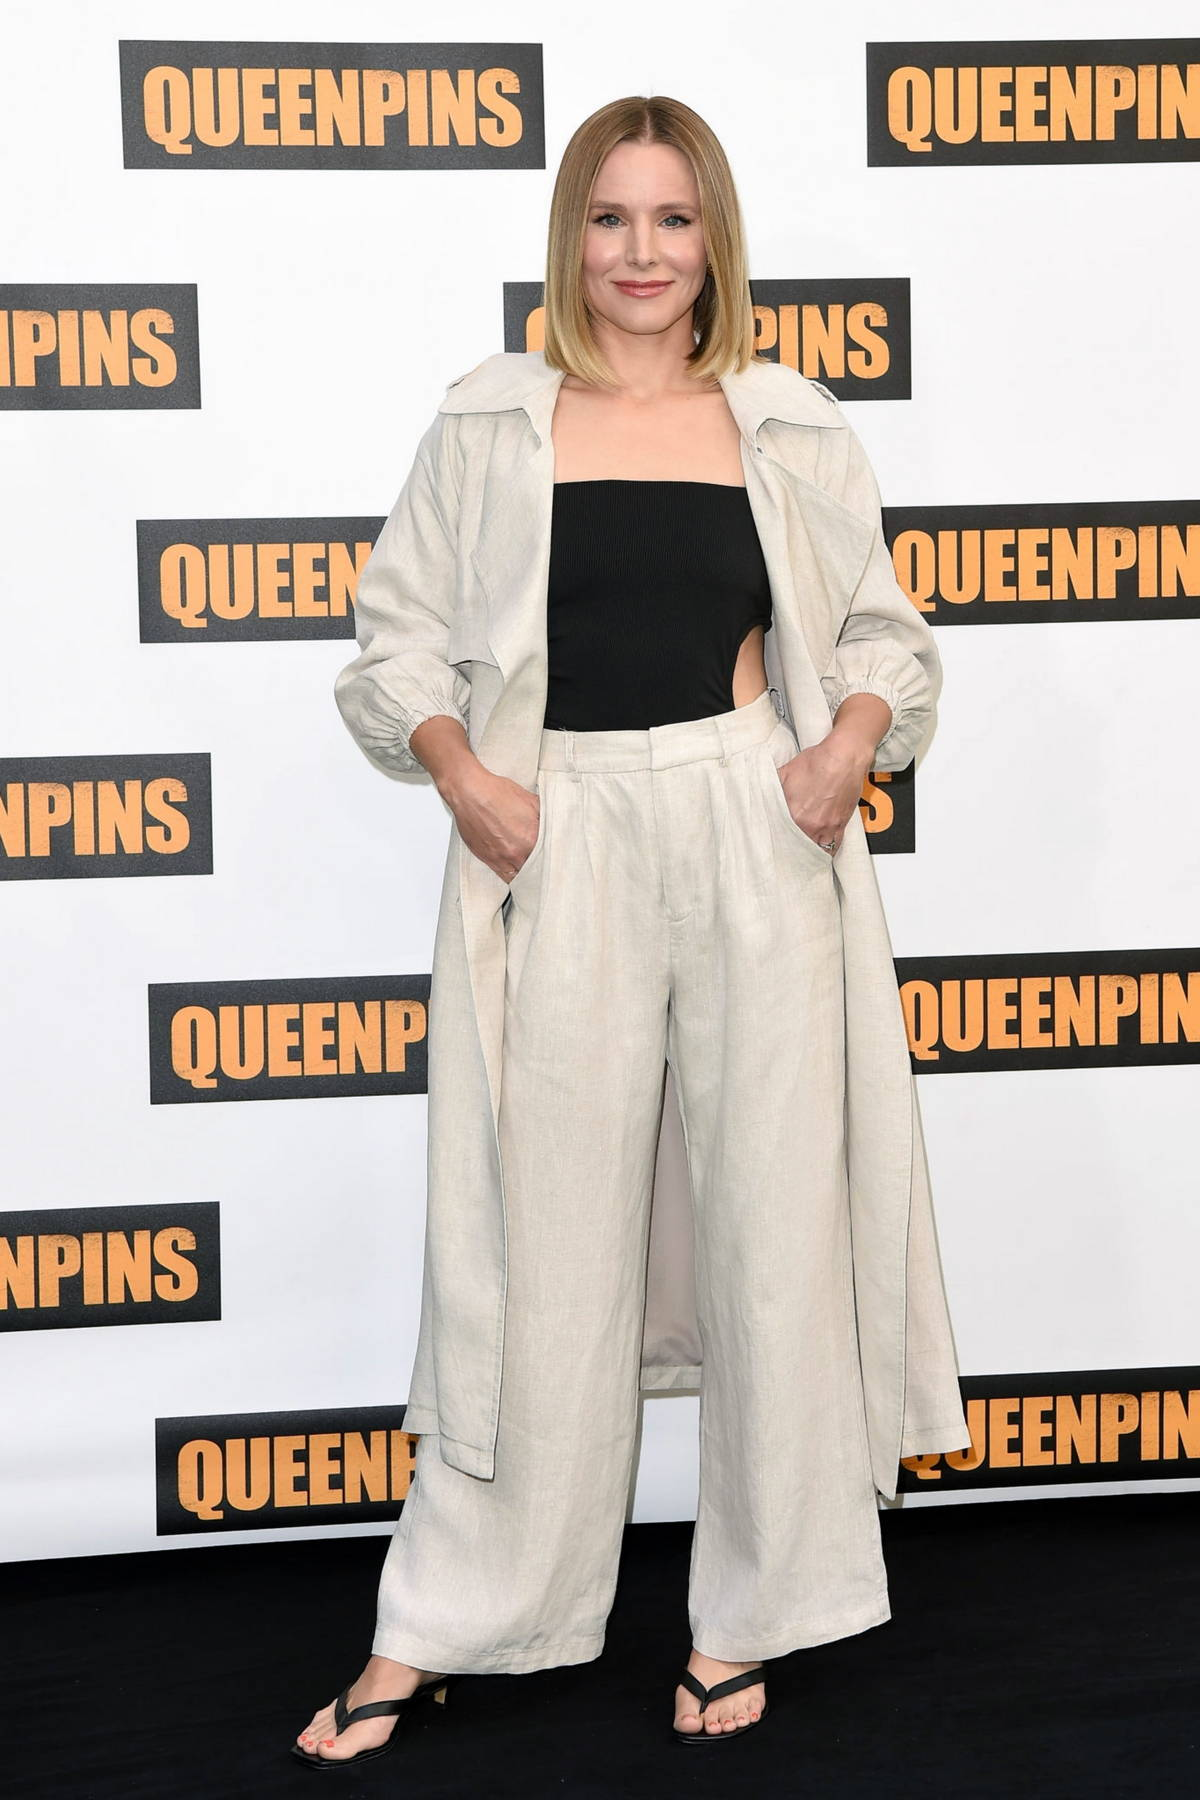 Kristen Bell attends the Photocall for 'Queenpins' at Four Seasons Hotel at Beverly Hills in Los Angeles